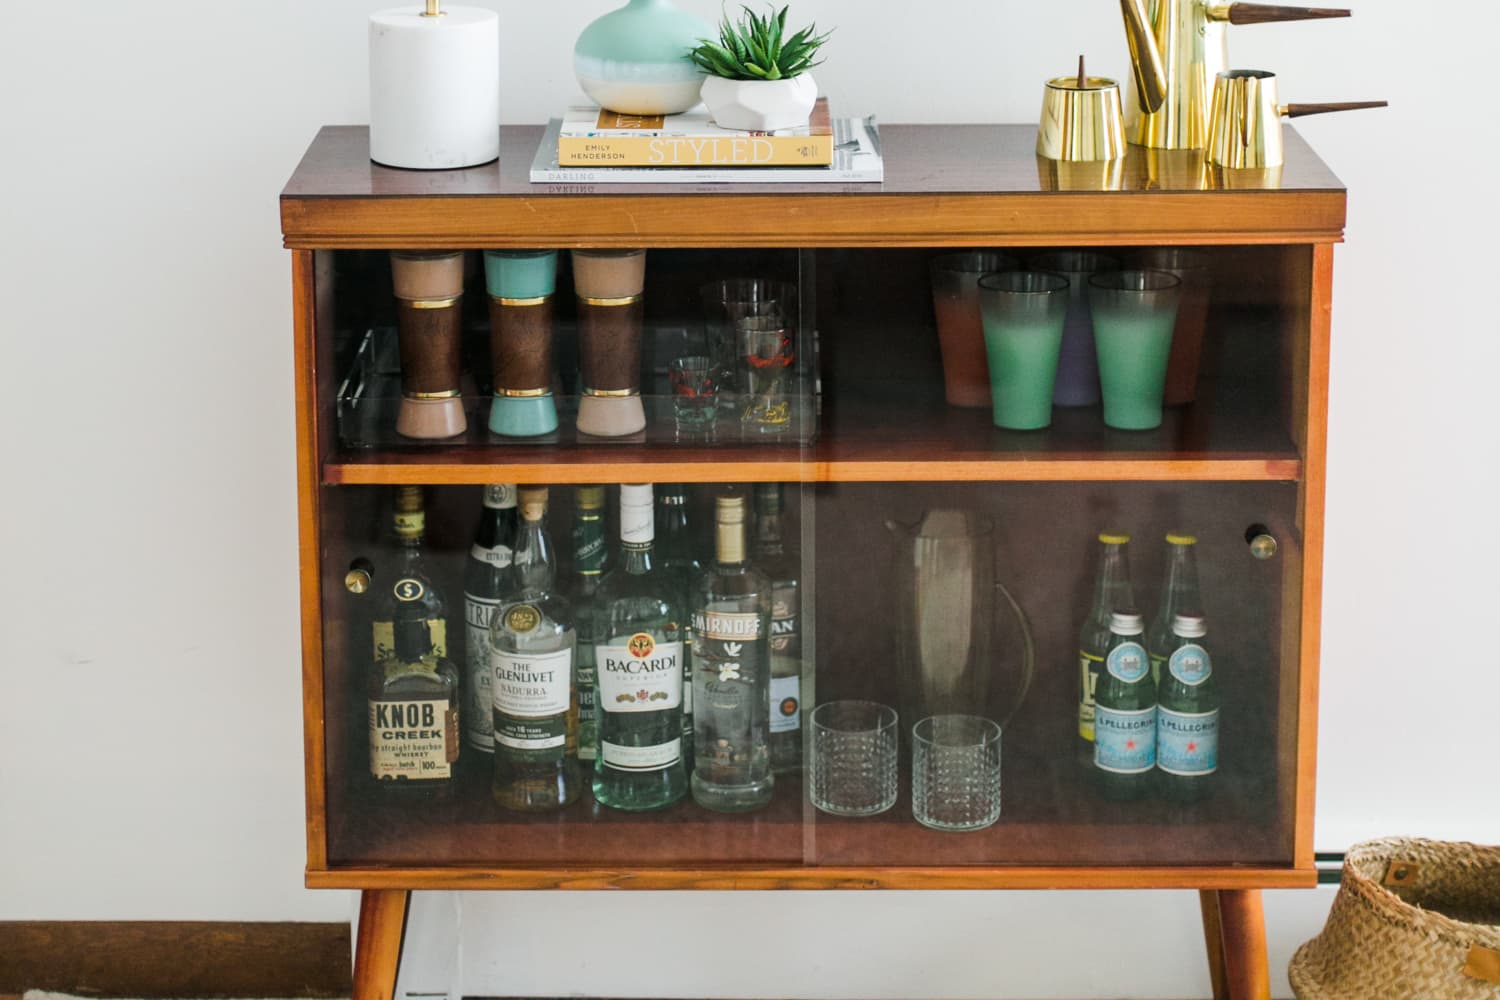 It's Official: Bar Cabinets are the New Bar Carts